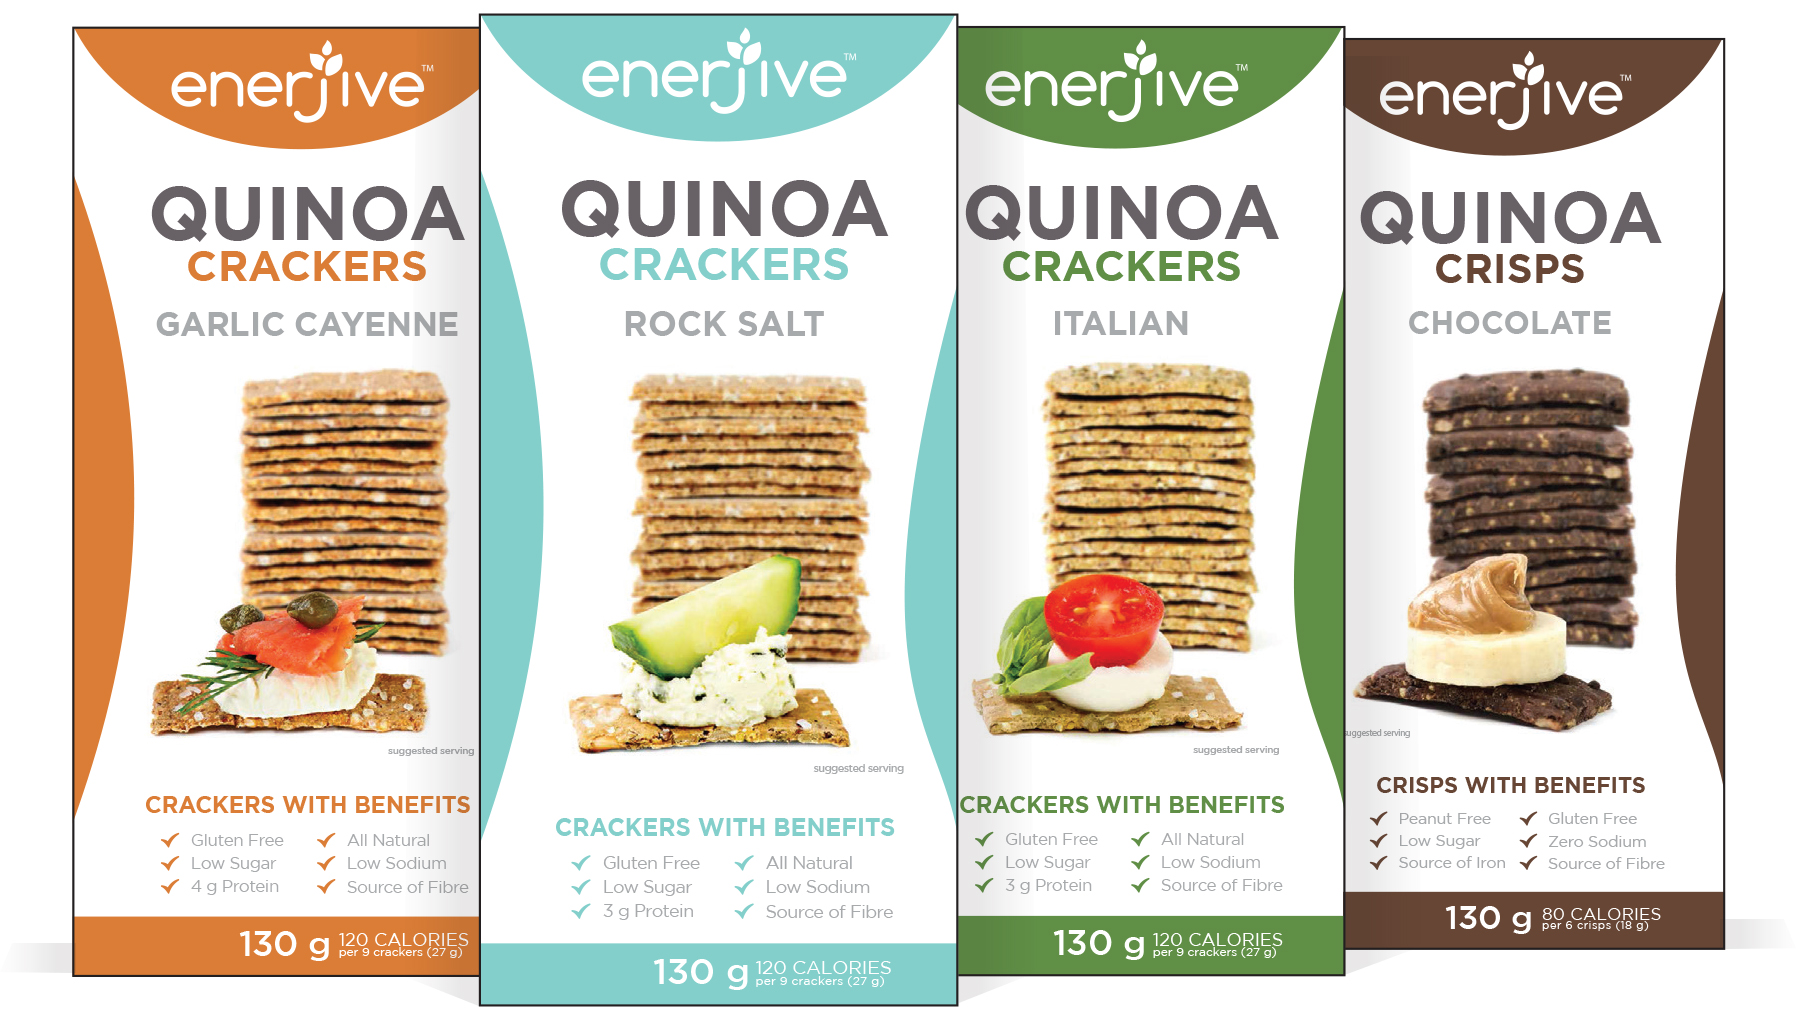 Product Review: enerjive™ Quinoa Crackers – Italian | Doug Cook